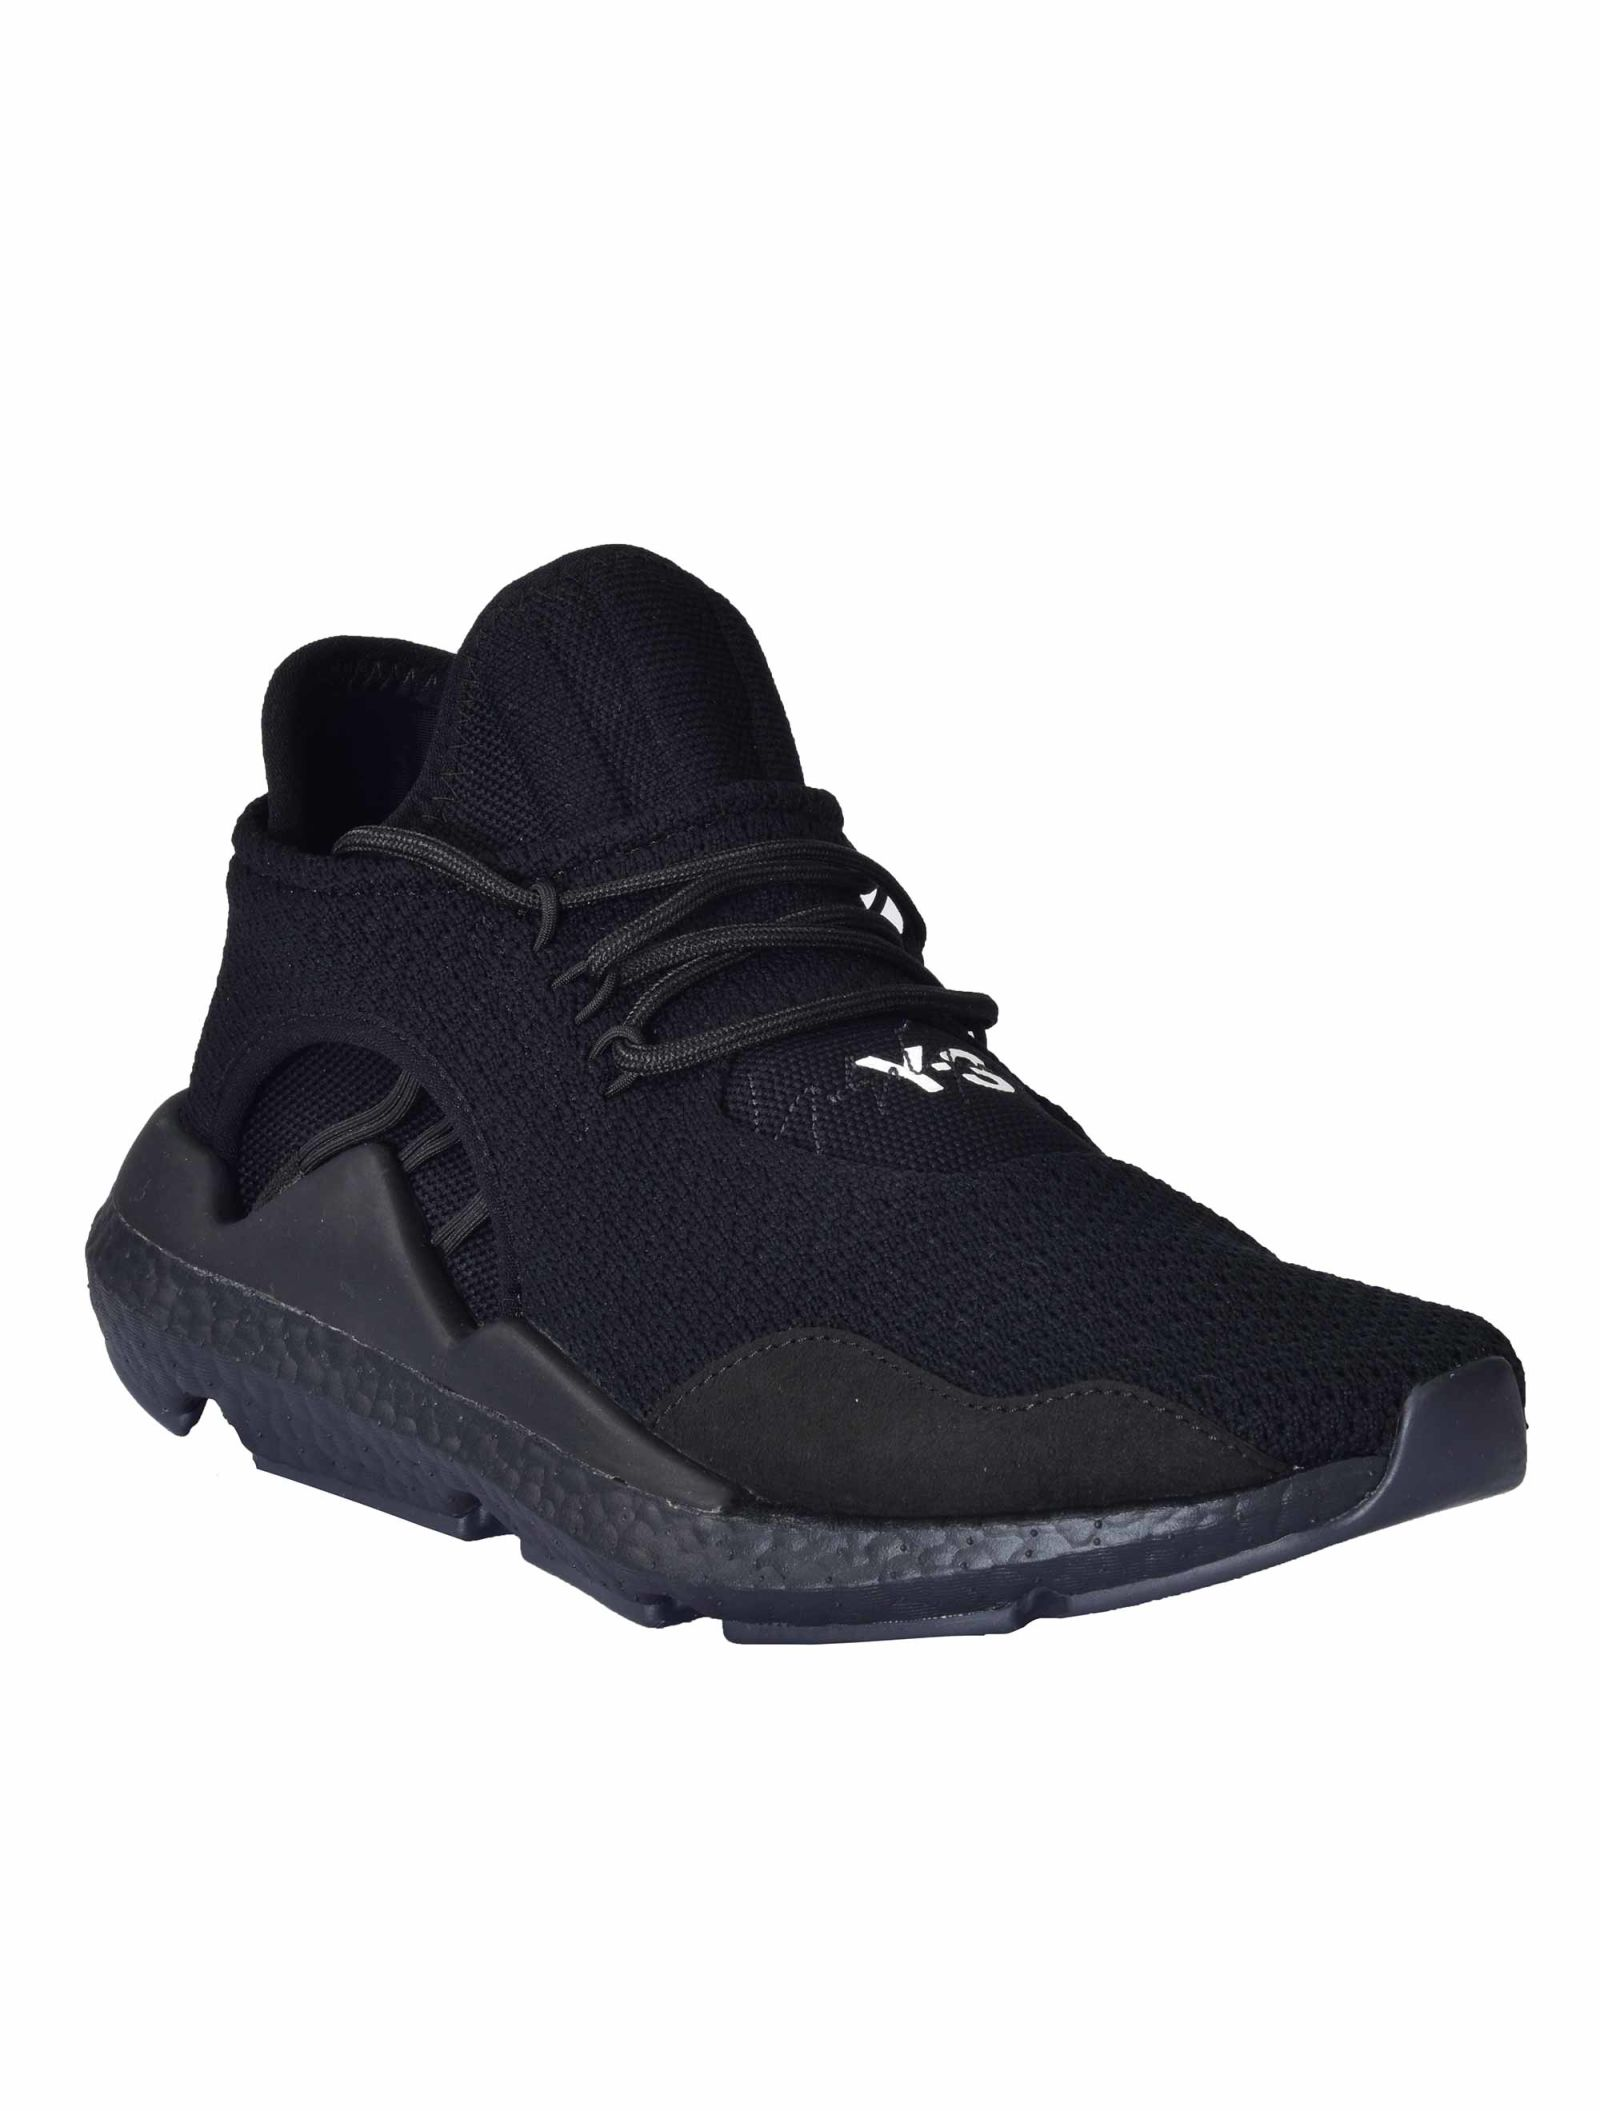 italist   Best price in the market for Y-3 Adidas Y-3 Saikou ... 7733bd387f